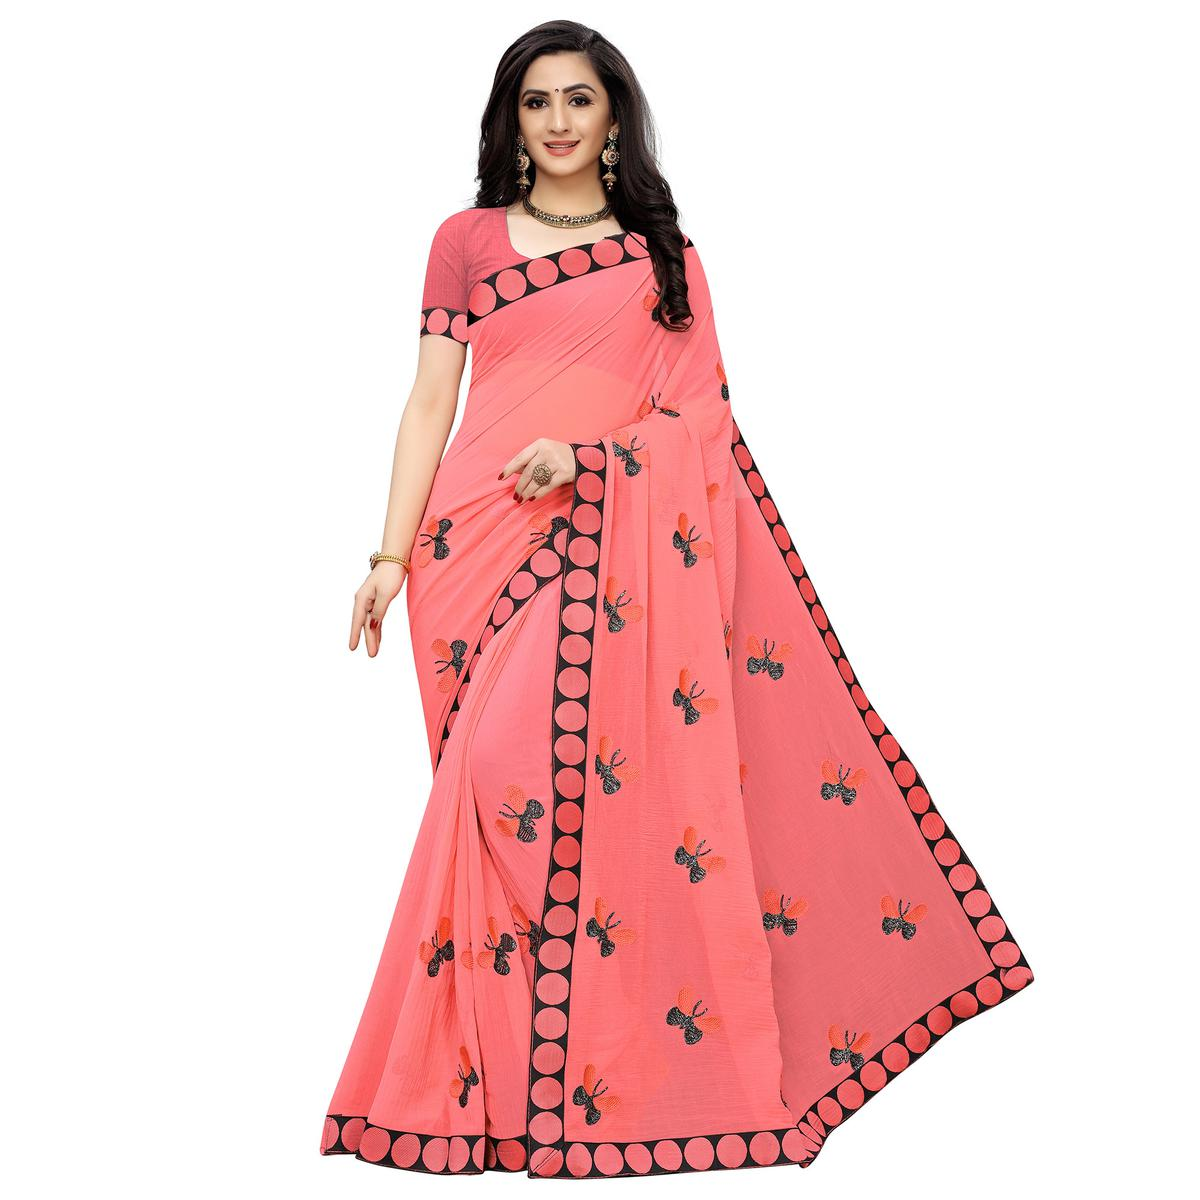 Blooming Peach Colored Party Wear Embroidered Georgette Saree